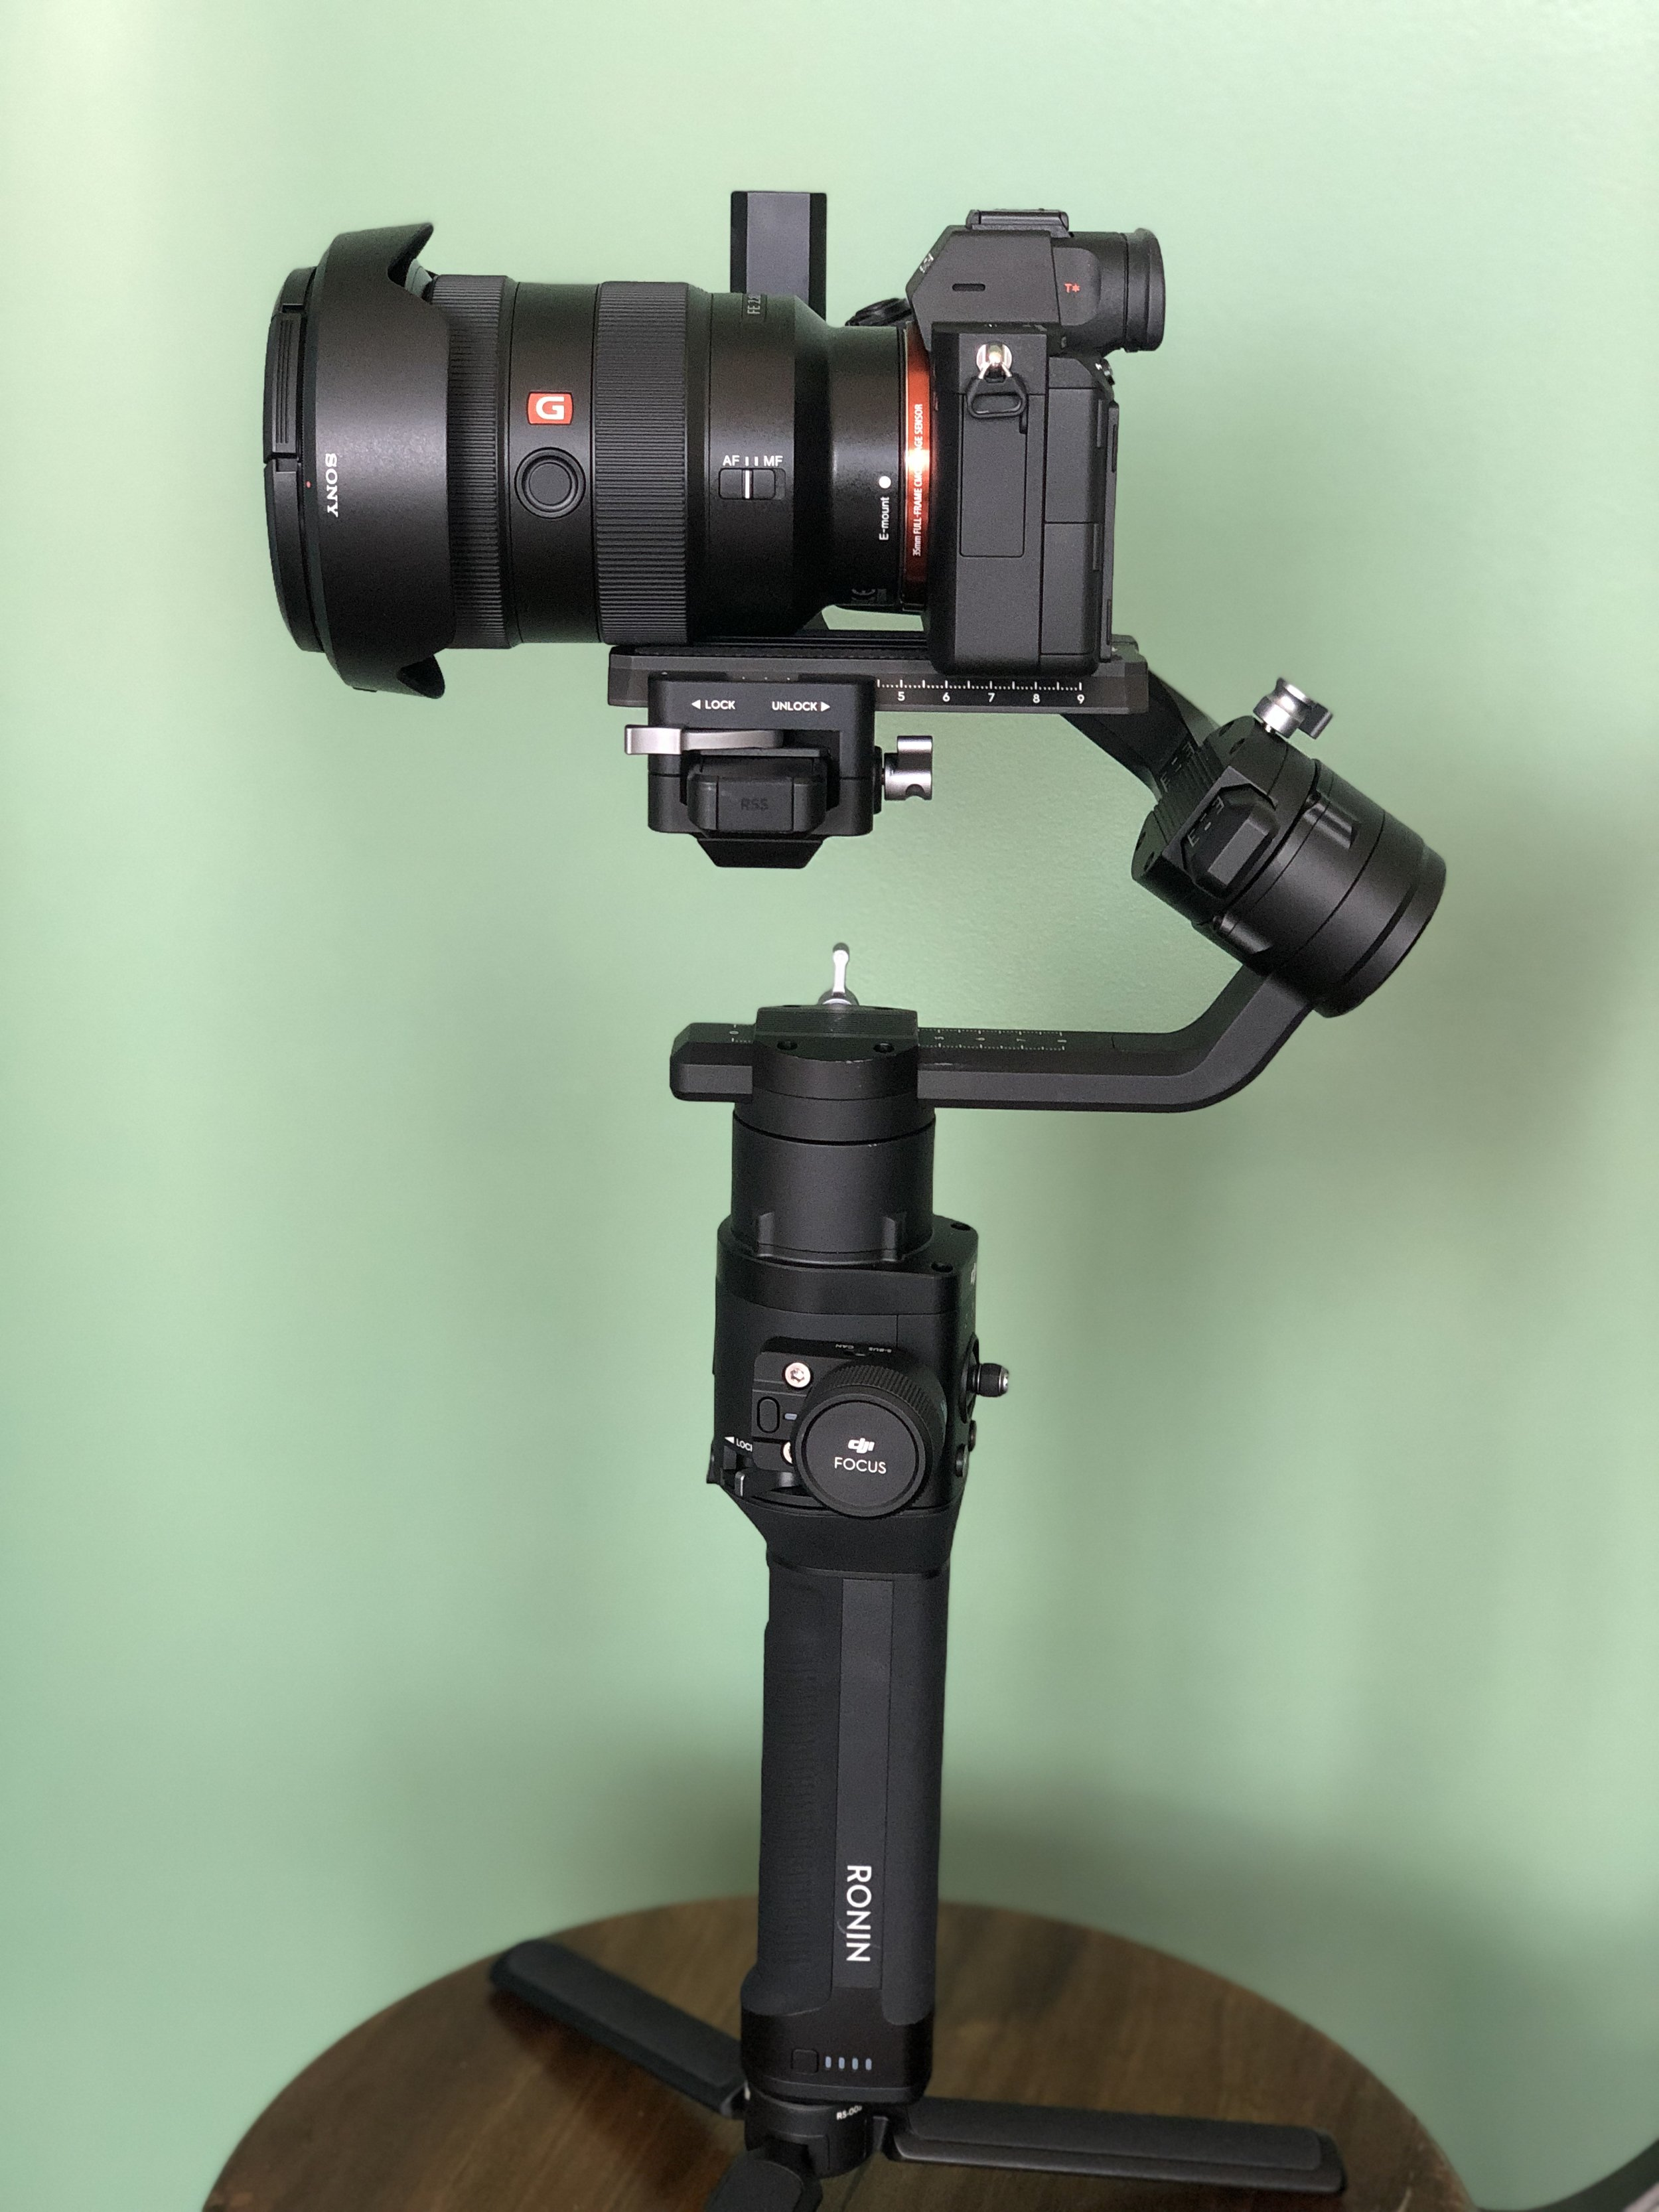 Sony A7R III camera stabilized by the Ronin-S gimbal